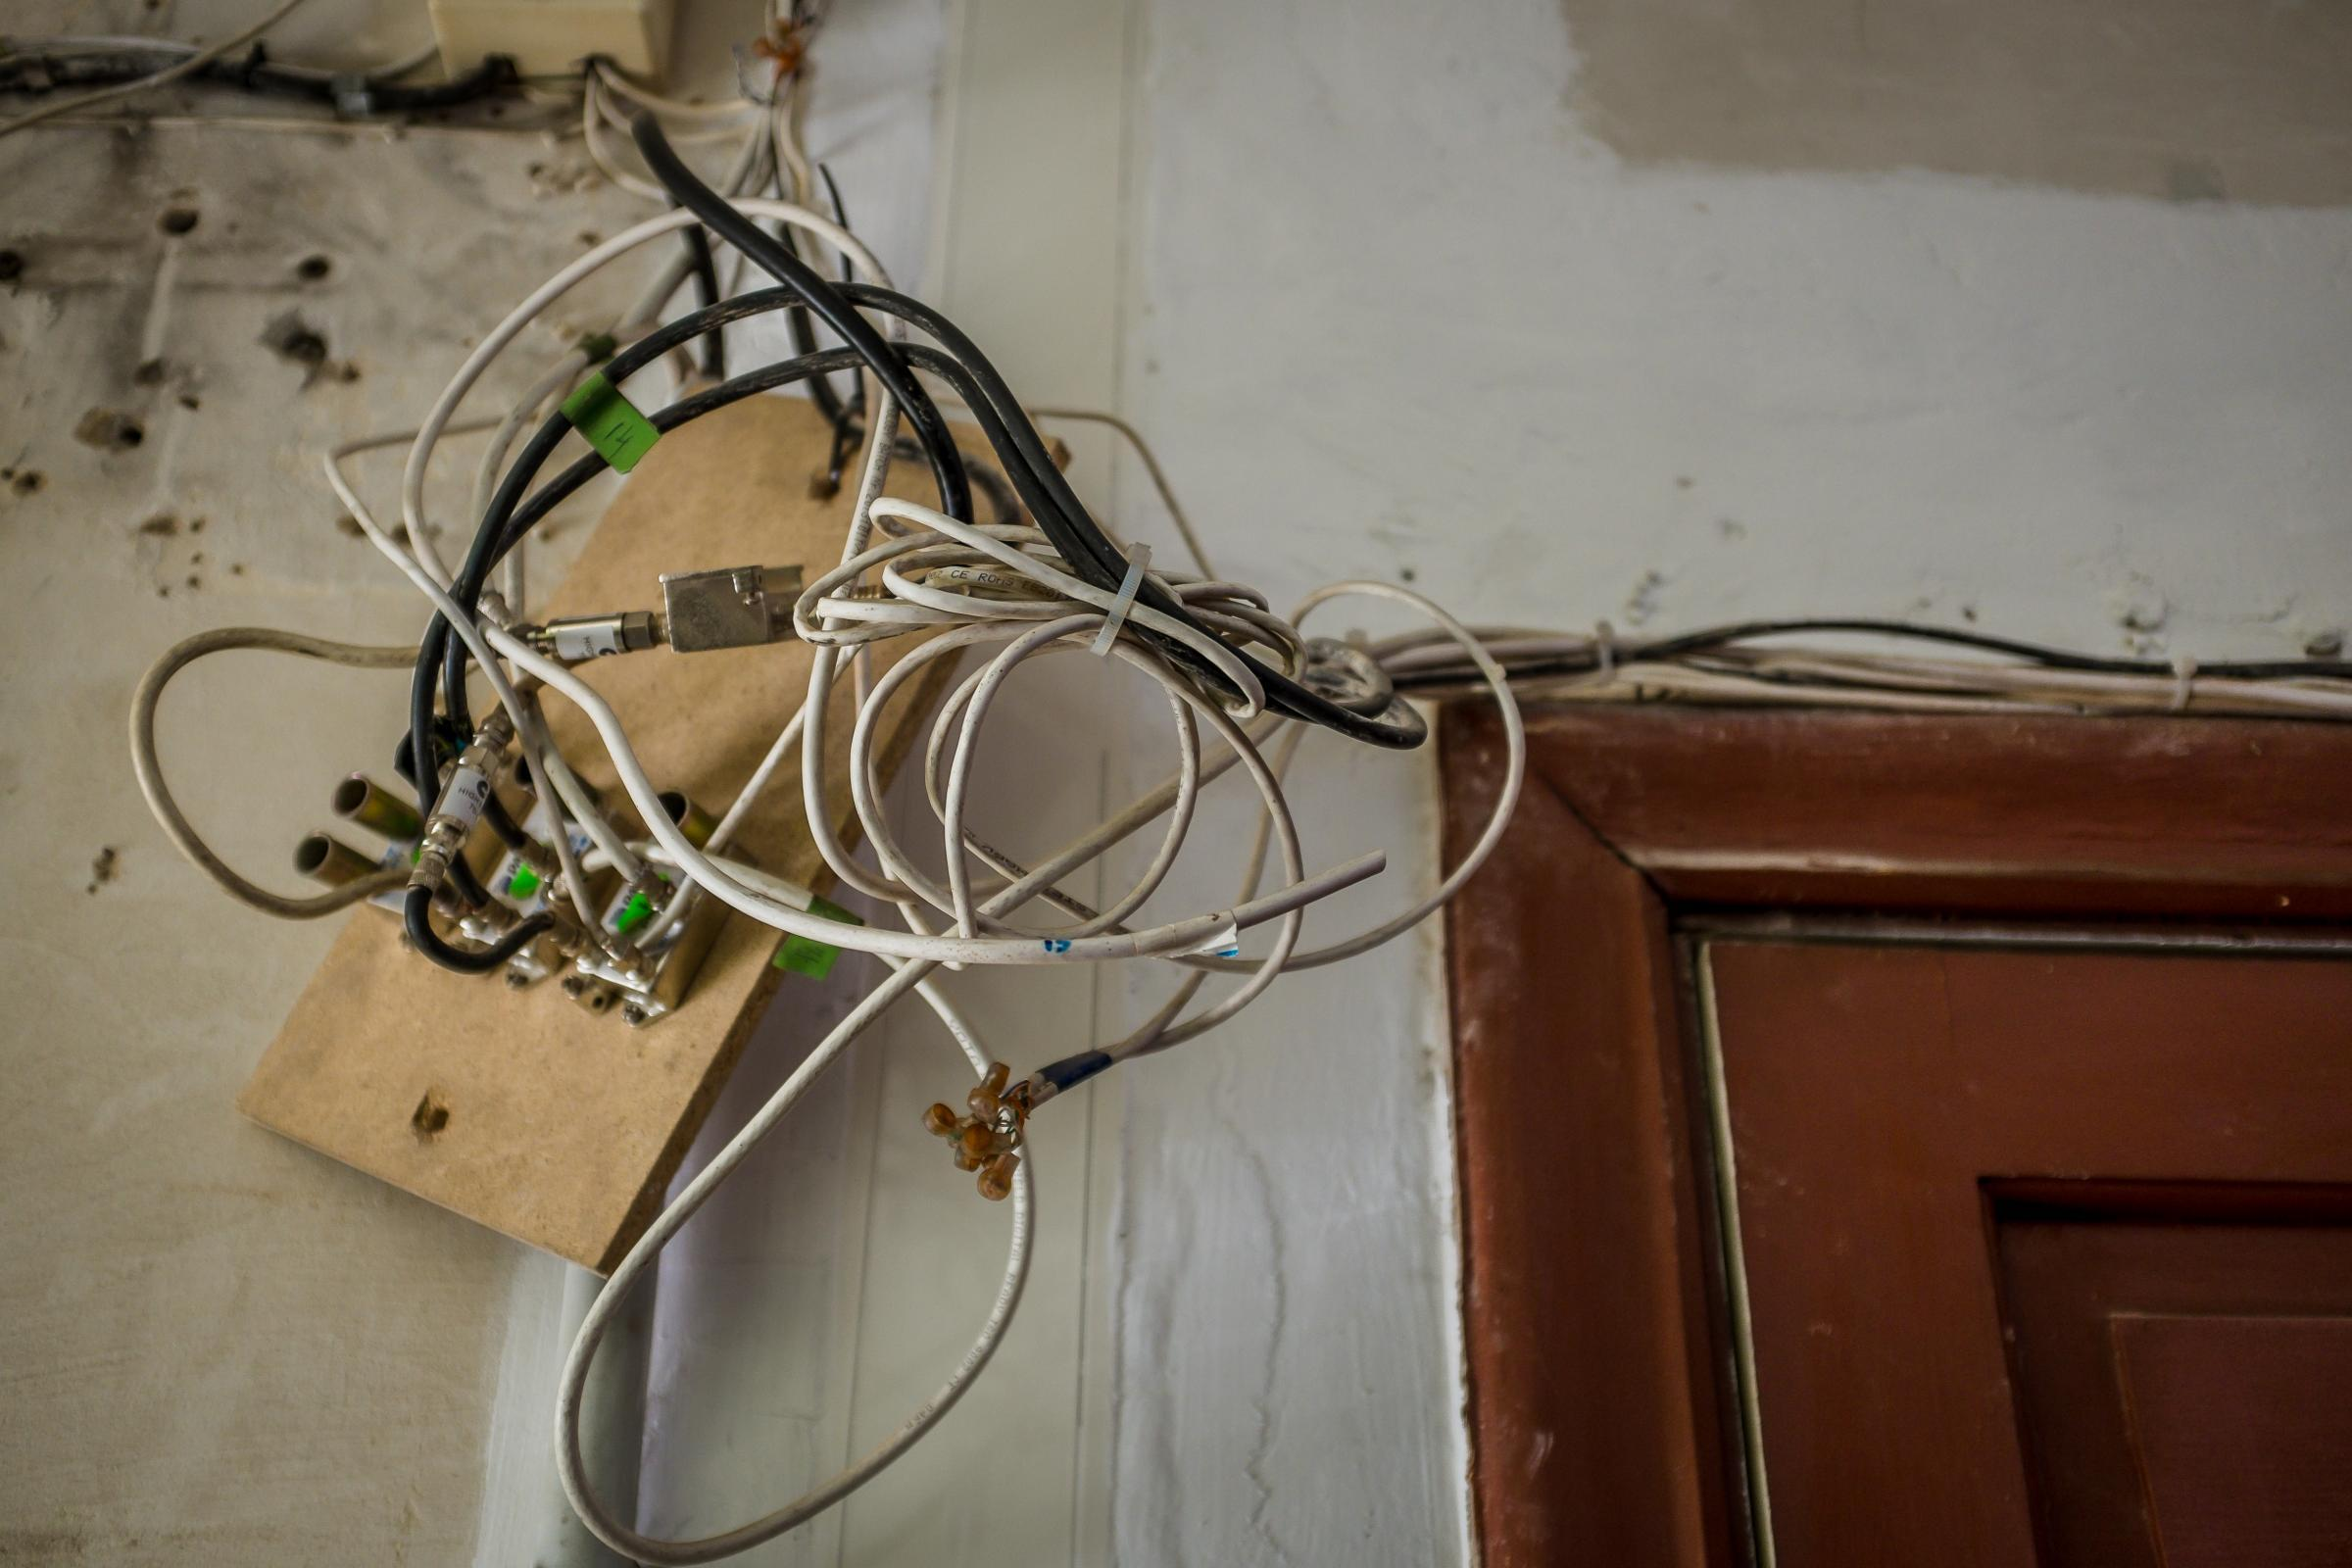 electrical wires hanging from ceiling in old house